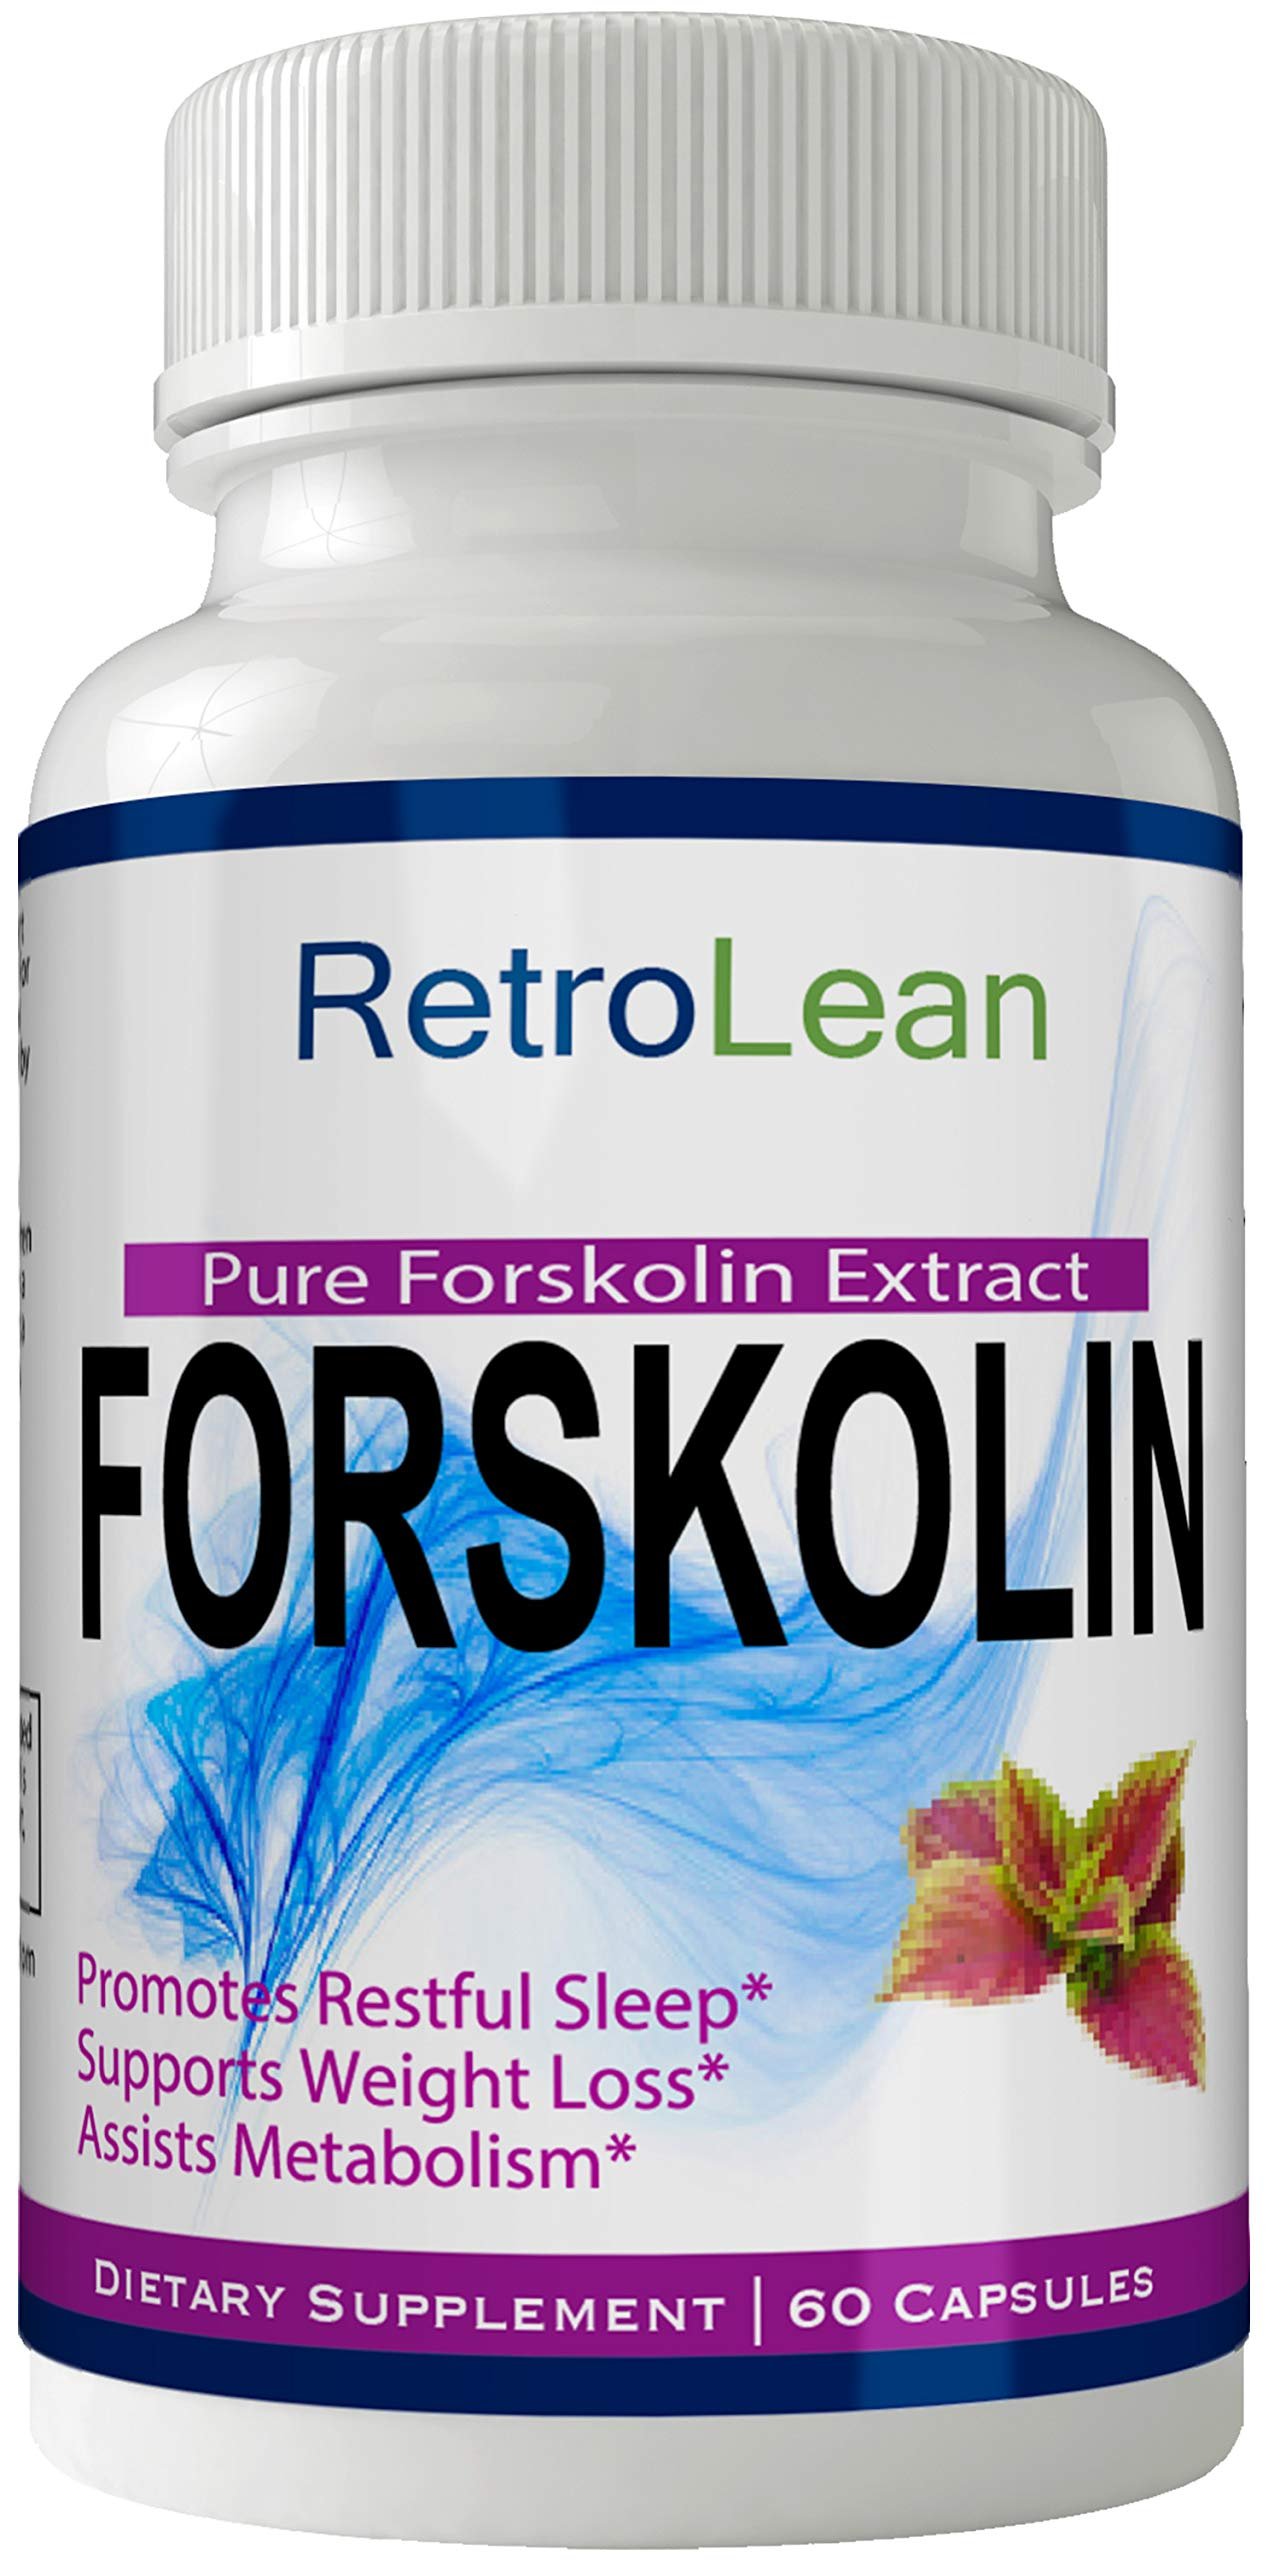 Retro Lean Forskolin for Weight Loss Pills Tablets Supplement - Capsules with Natural High Quality Pure Forskolin Extract Diet Pills, Boost Metabolism and Digestive Function by nutra4health LLC (Image #1)